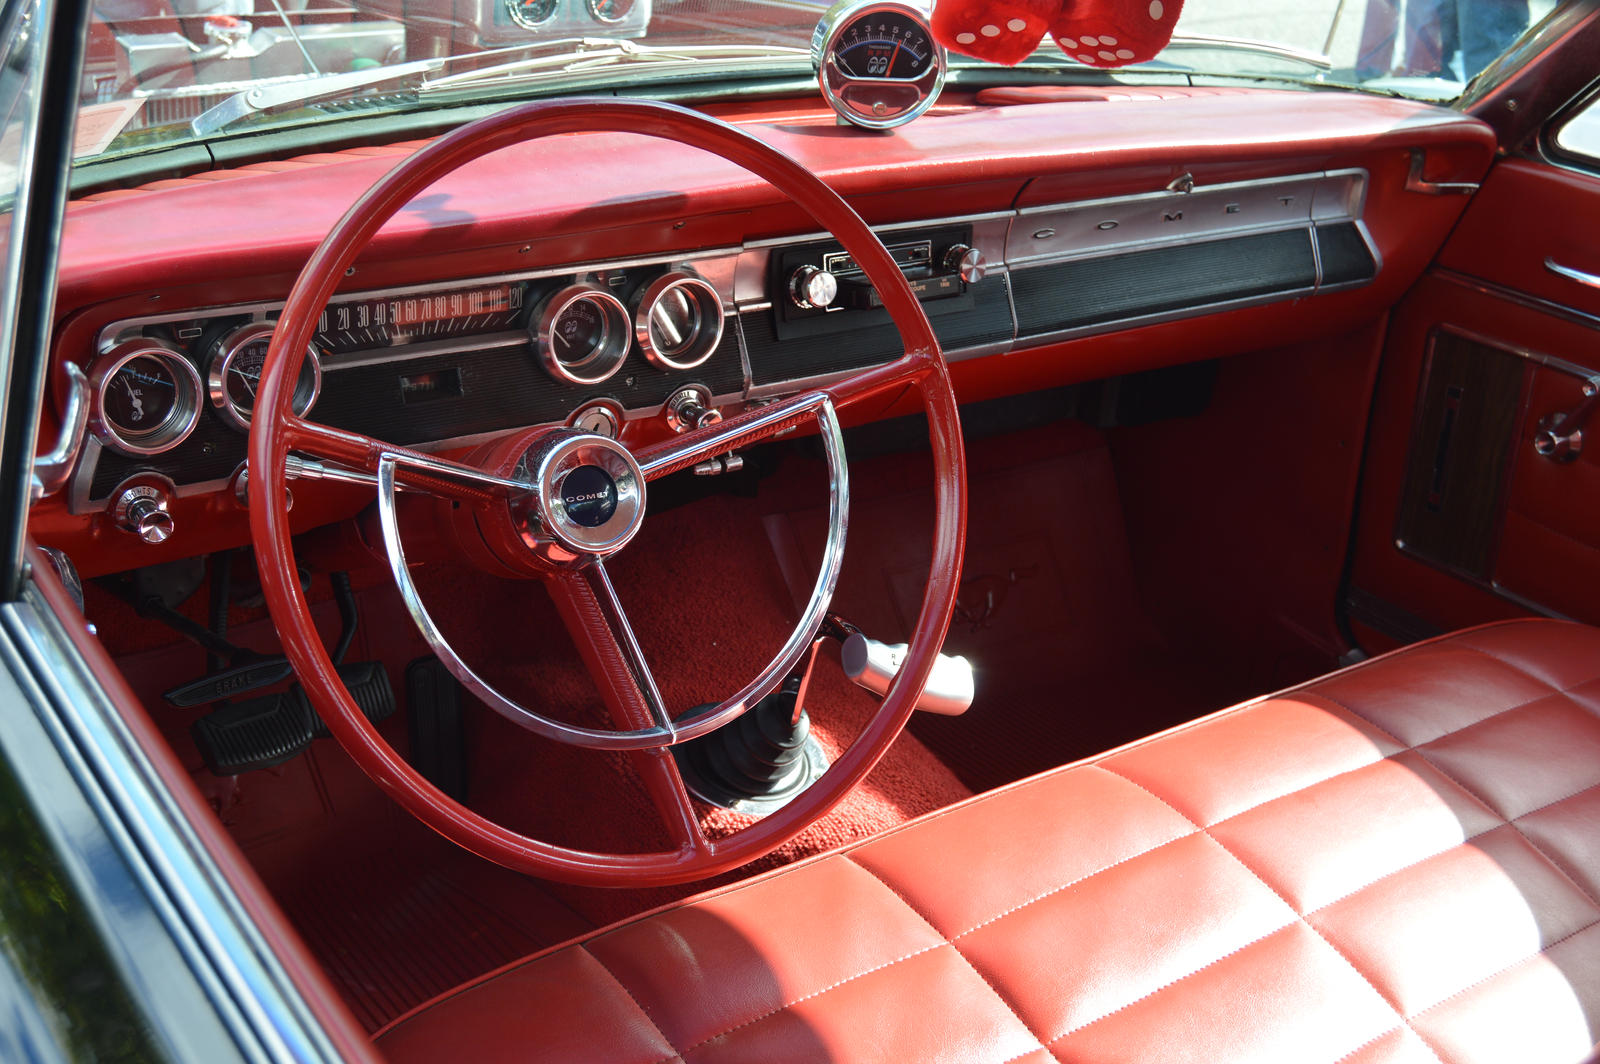 1964 Mercury Comet Interior by Brooklyn47 on DeviantArt